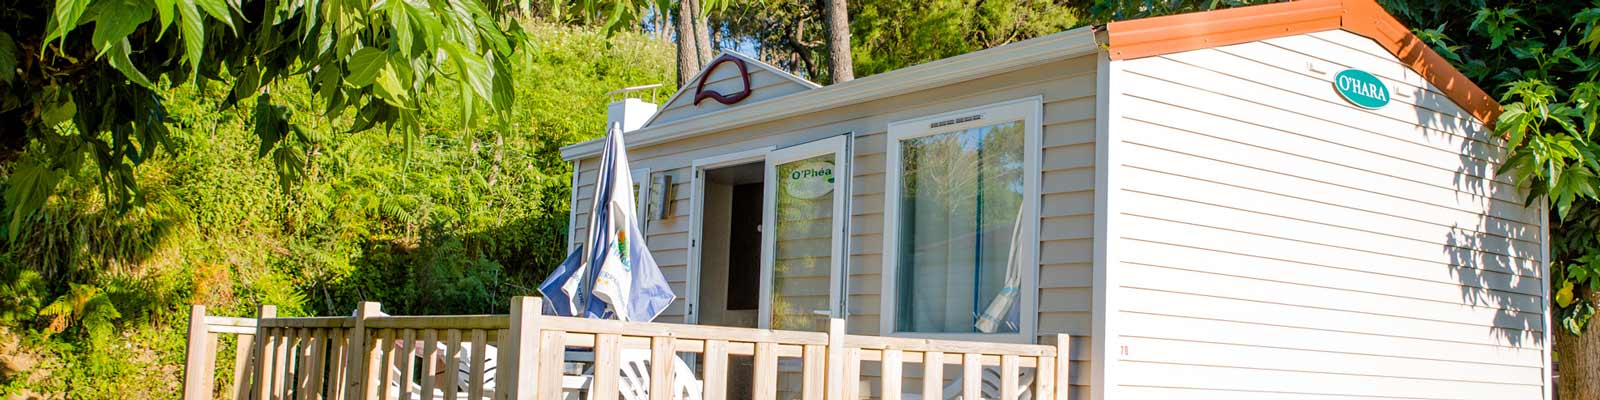 Location mobil home 2 personnes pays basque mobil home for Camping st jean de luz bord de mer avec piscine